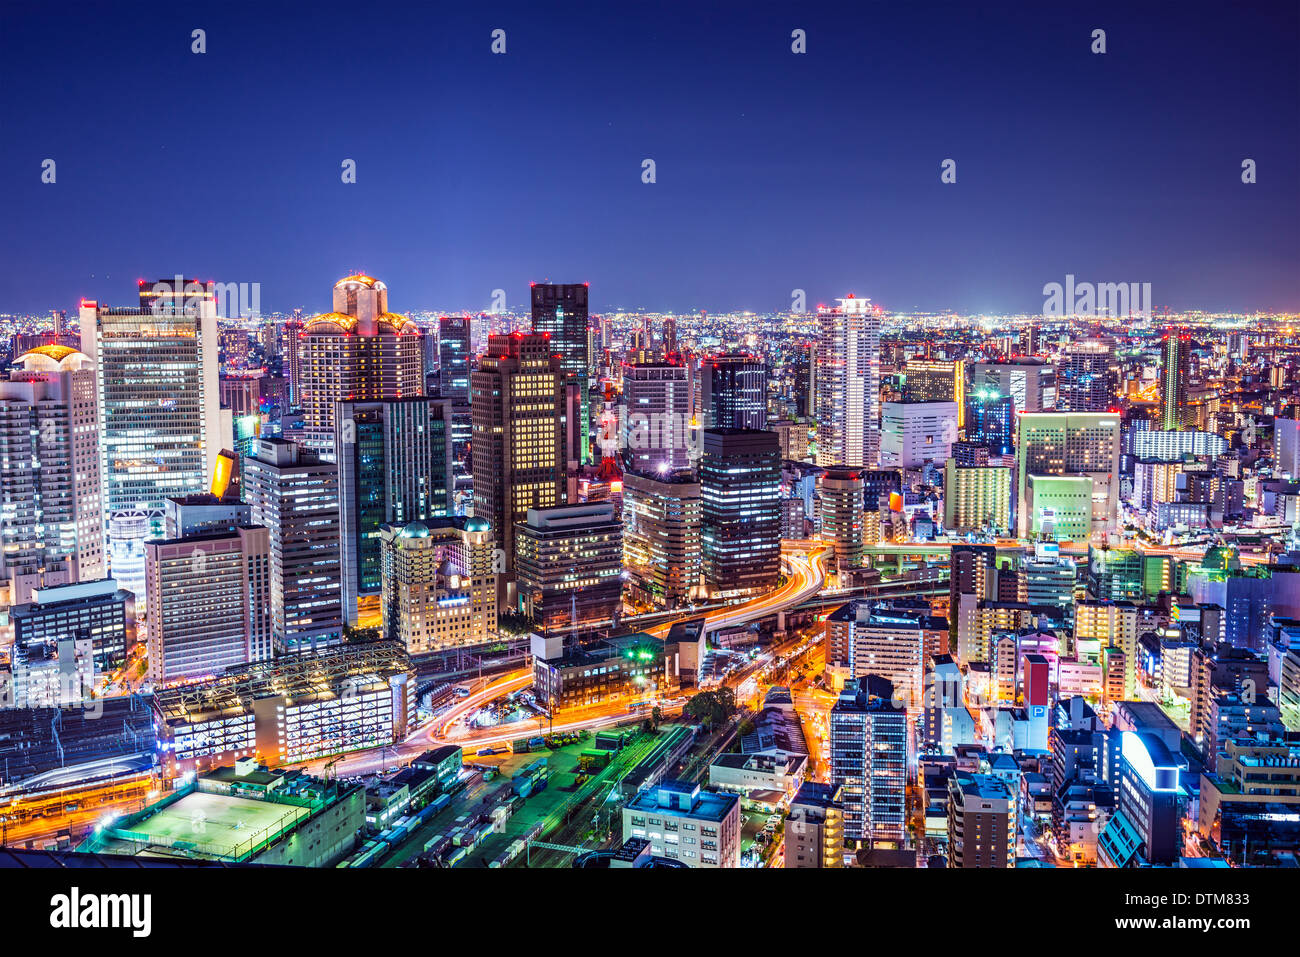 Osaka, Japan at the landmark Umeda District. - Stock Image